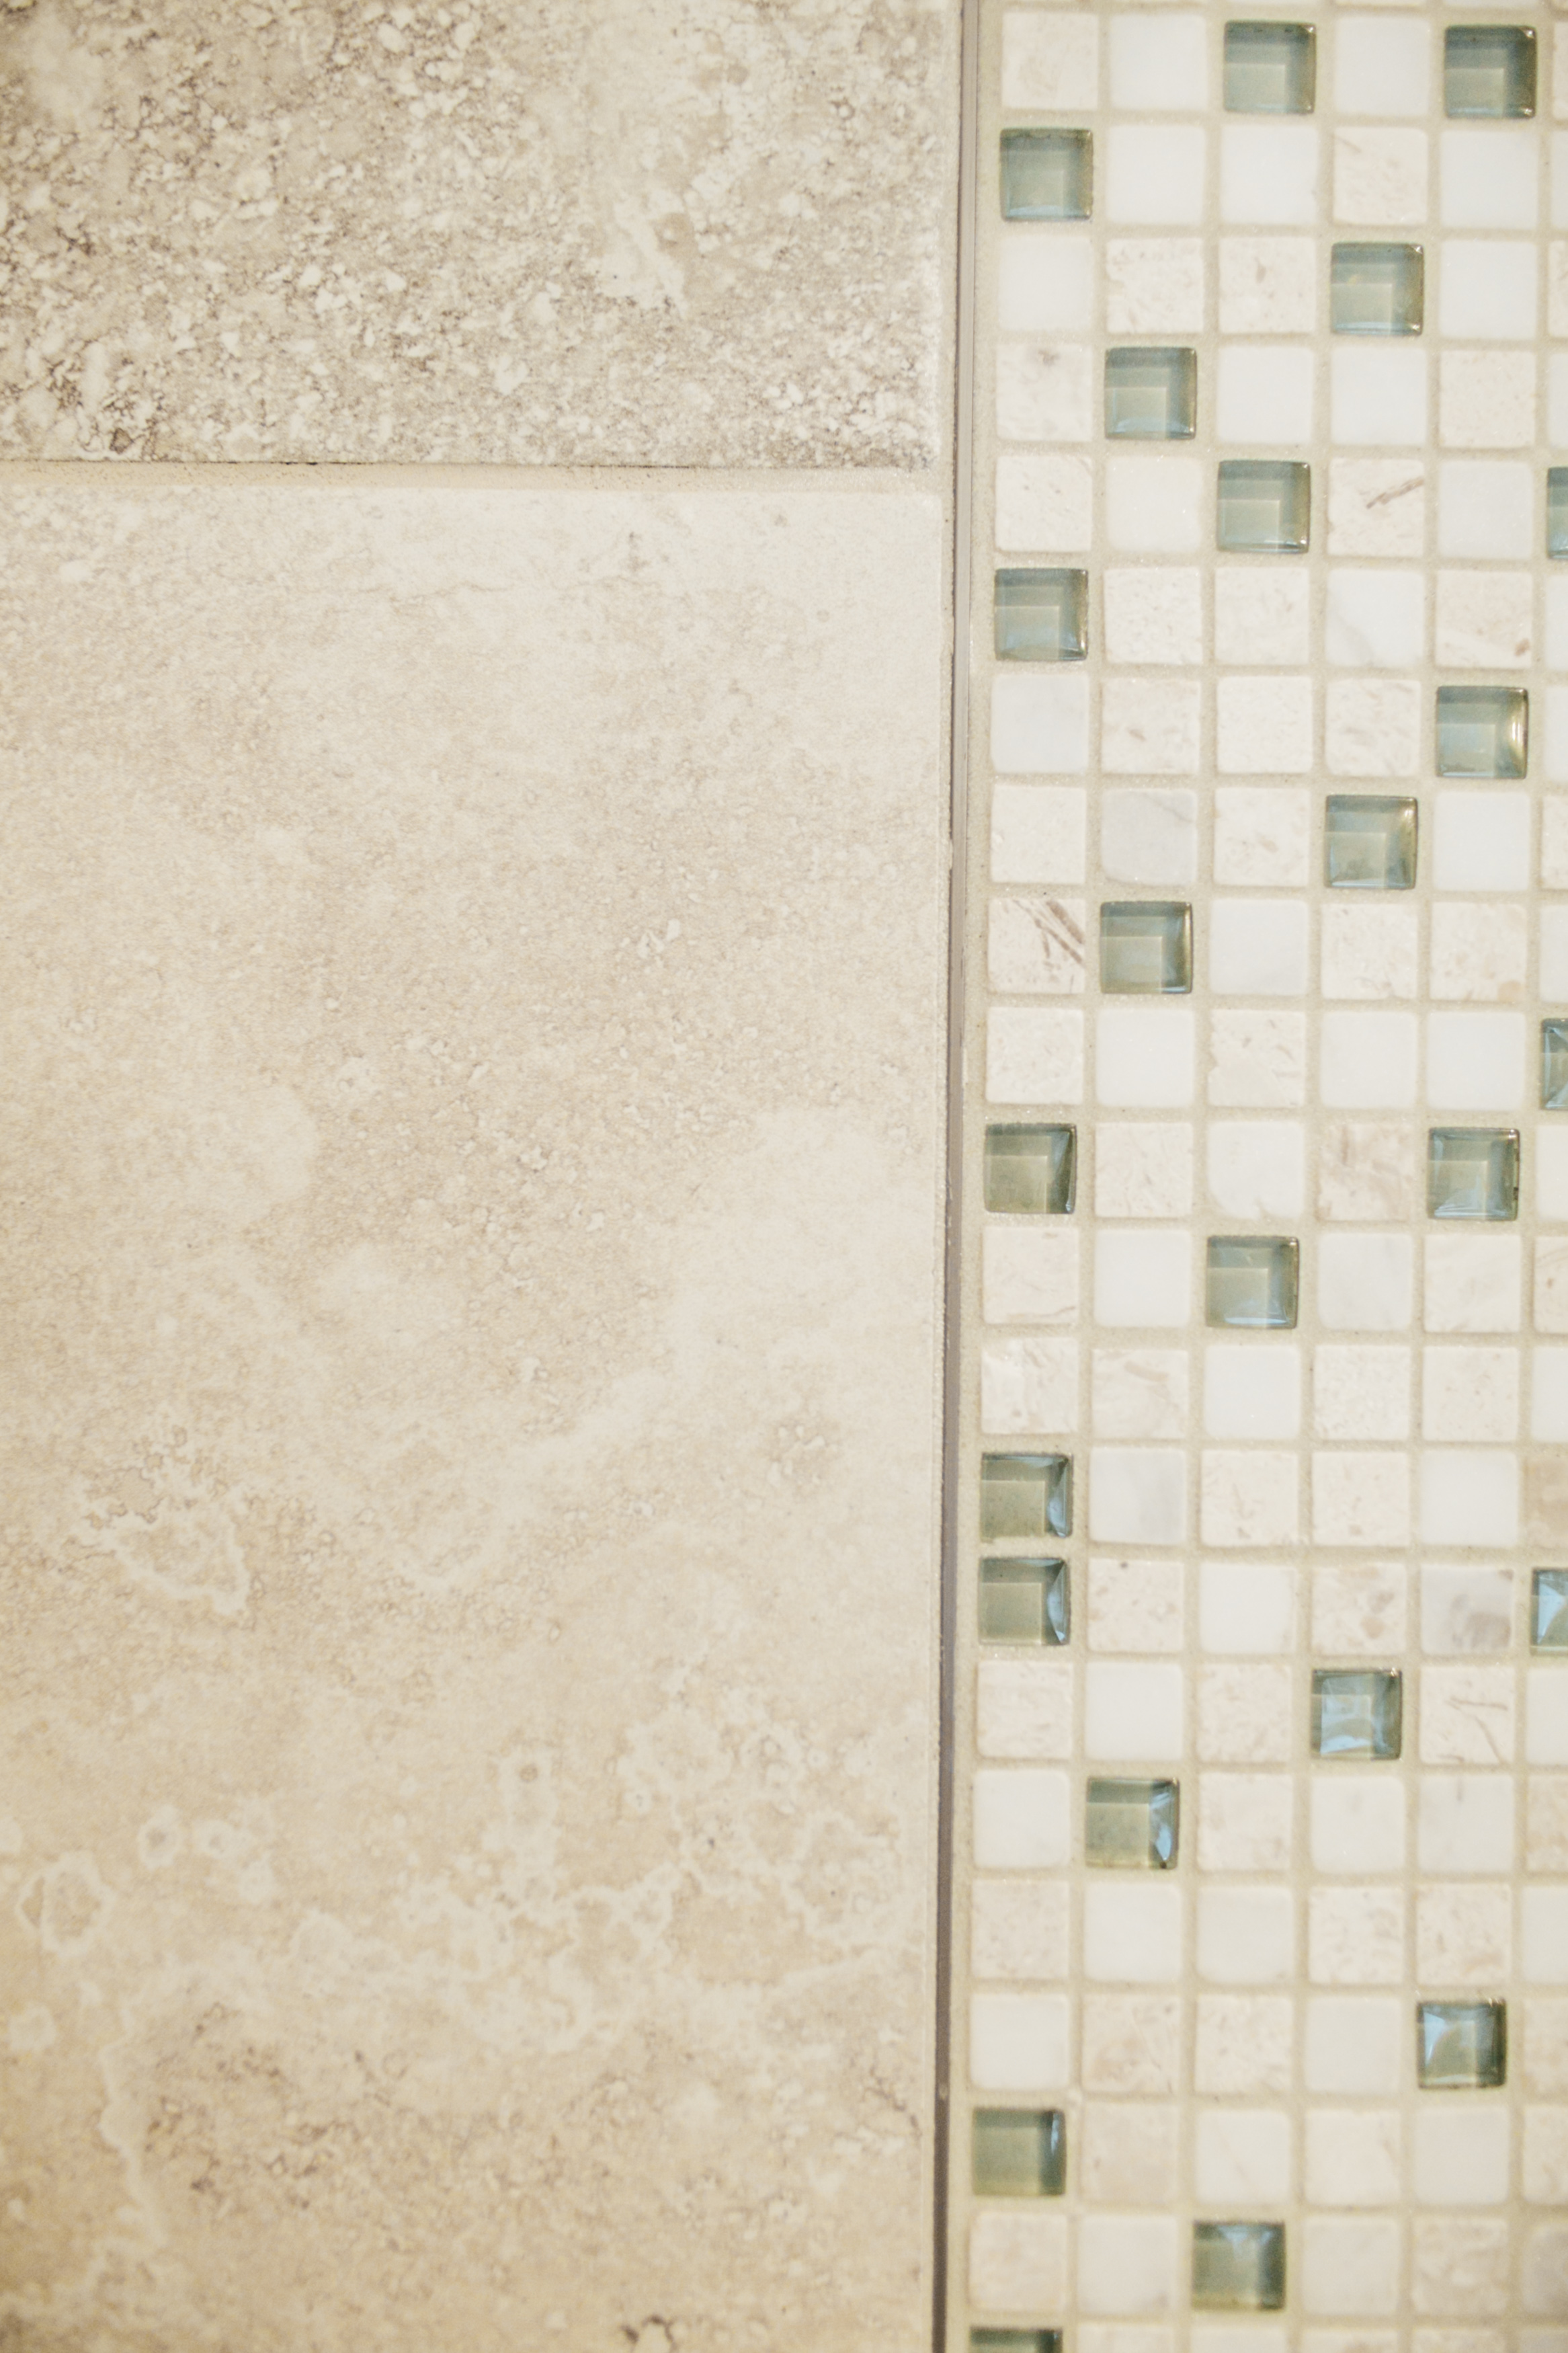 Schluter Rail Detail with Marble Mosaic